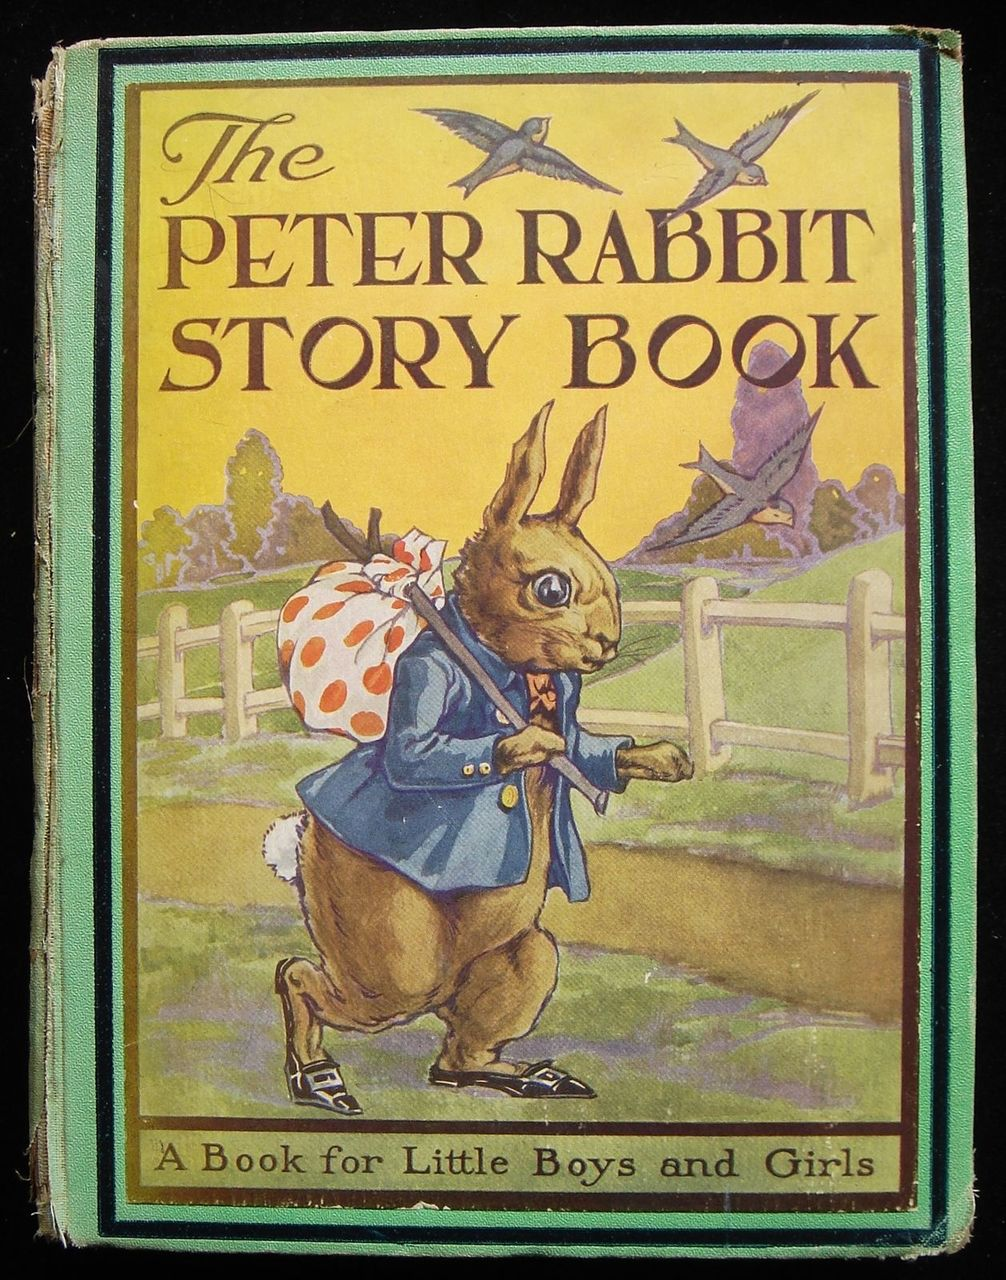 THE PETER RABBIT STORY BOOK FOR LITTLE BOYS AND GIRLS, by Beatrix Potter 1935